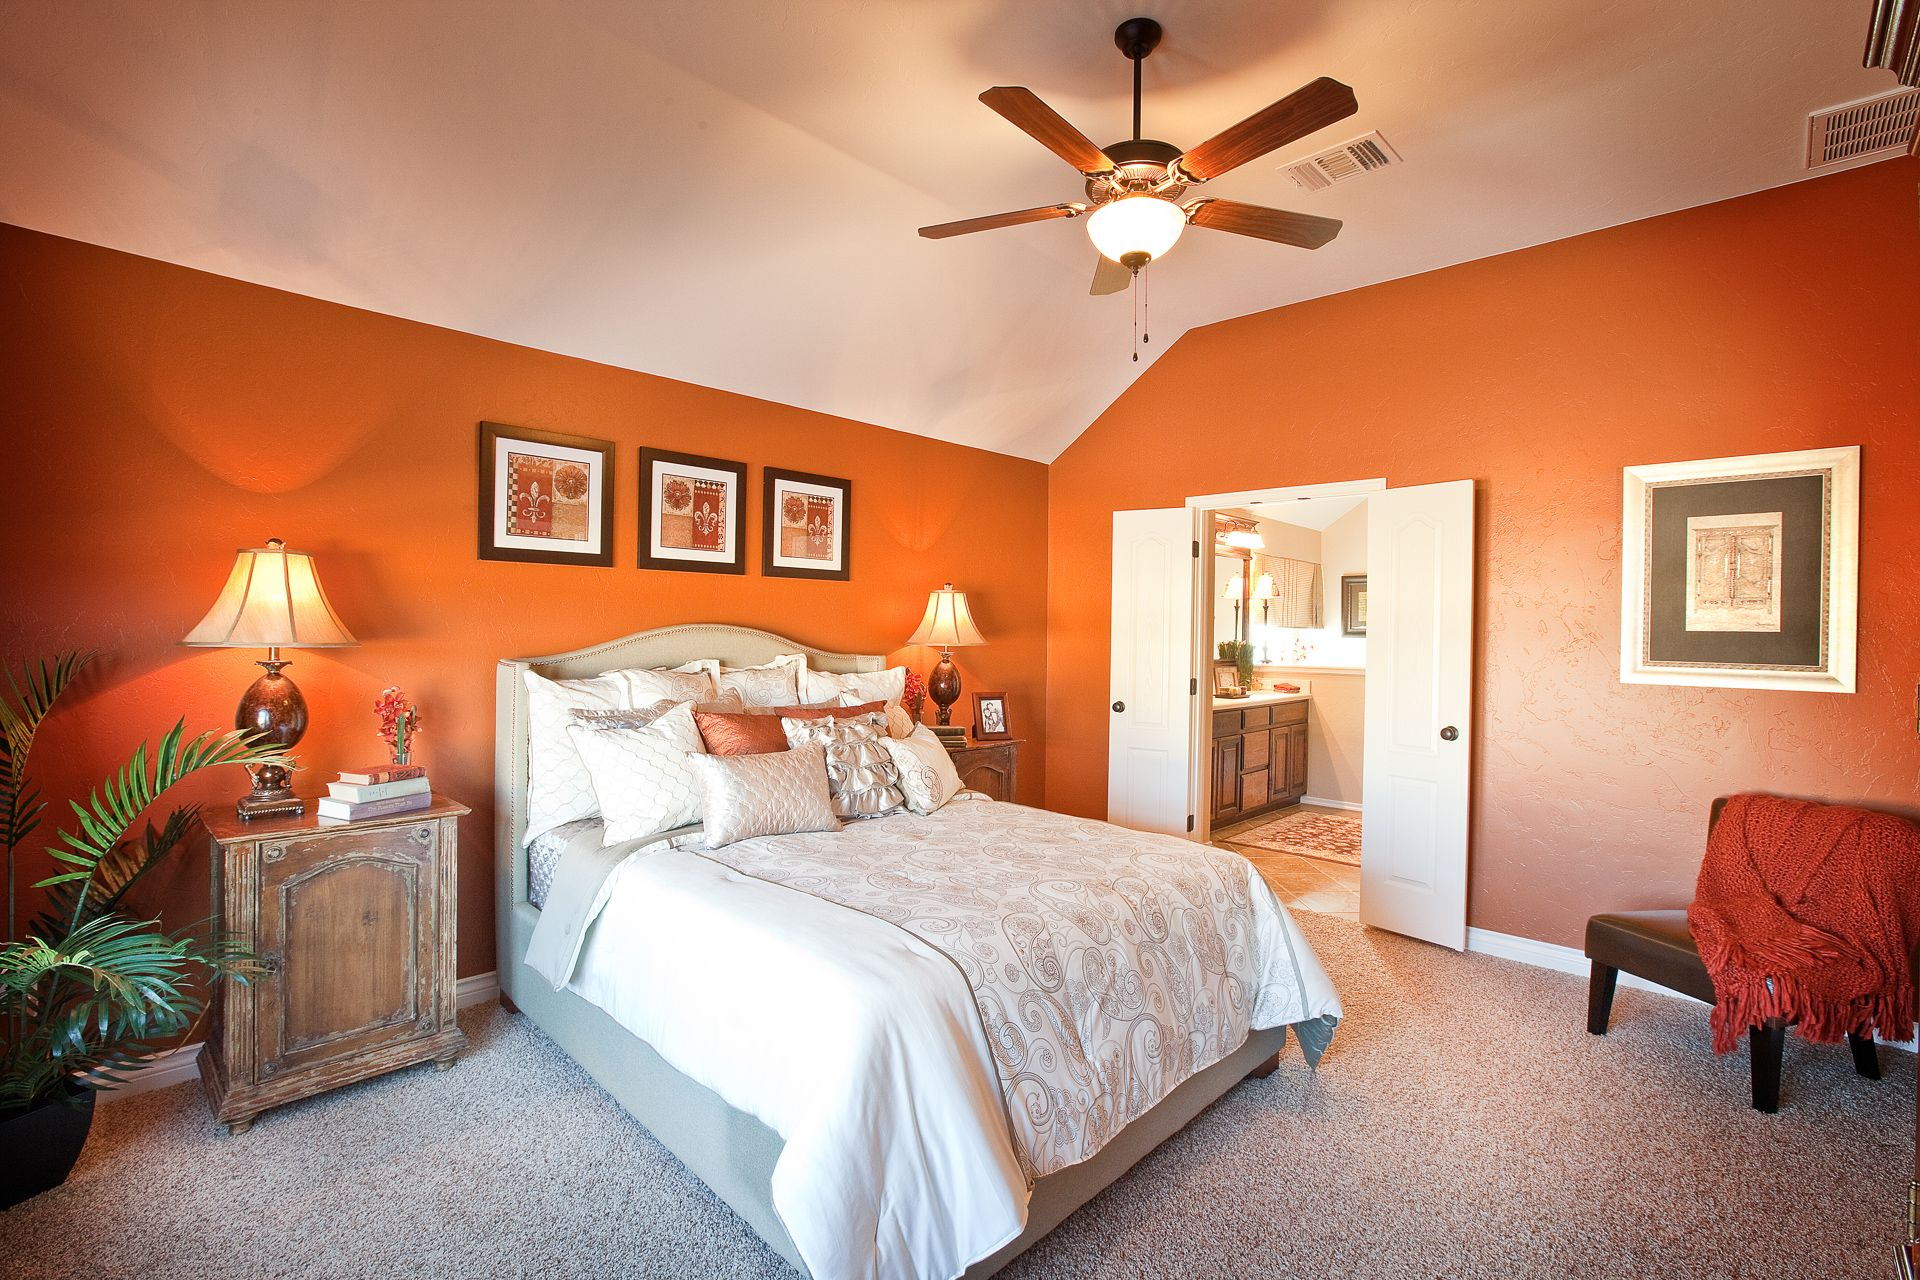 Bedroom featured in the Hendrix By Ideal Homes in Oklahoma City, OK